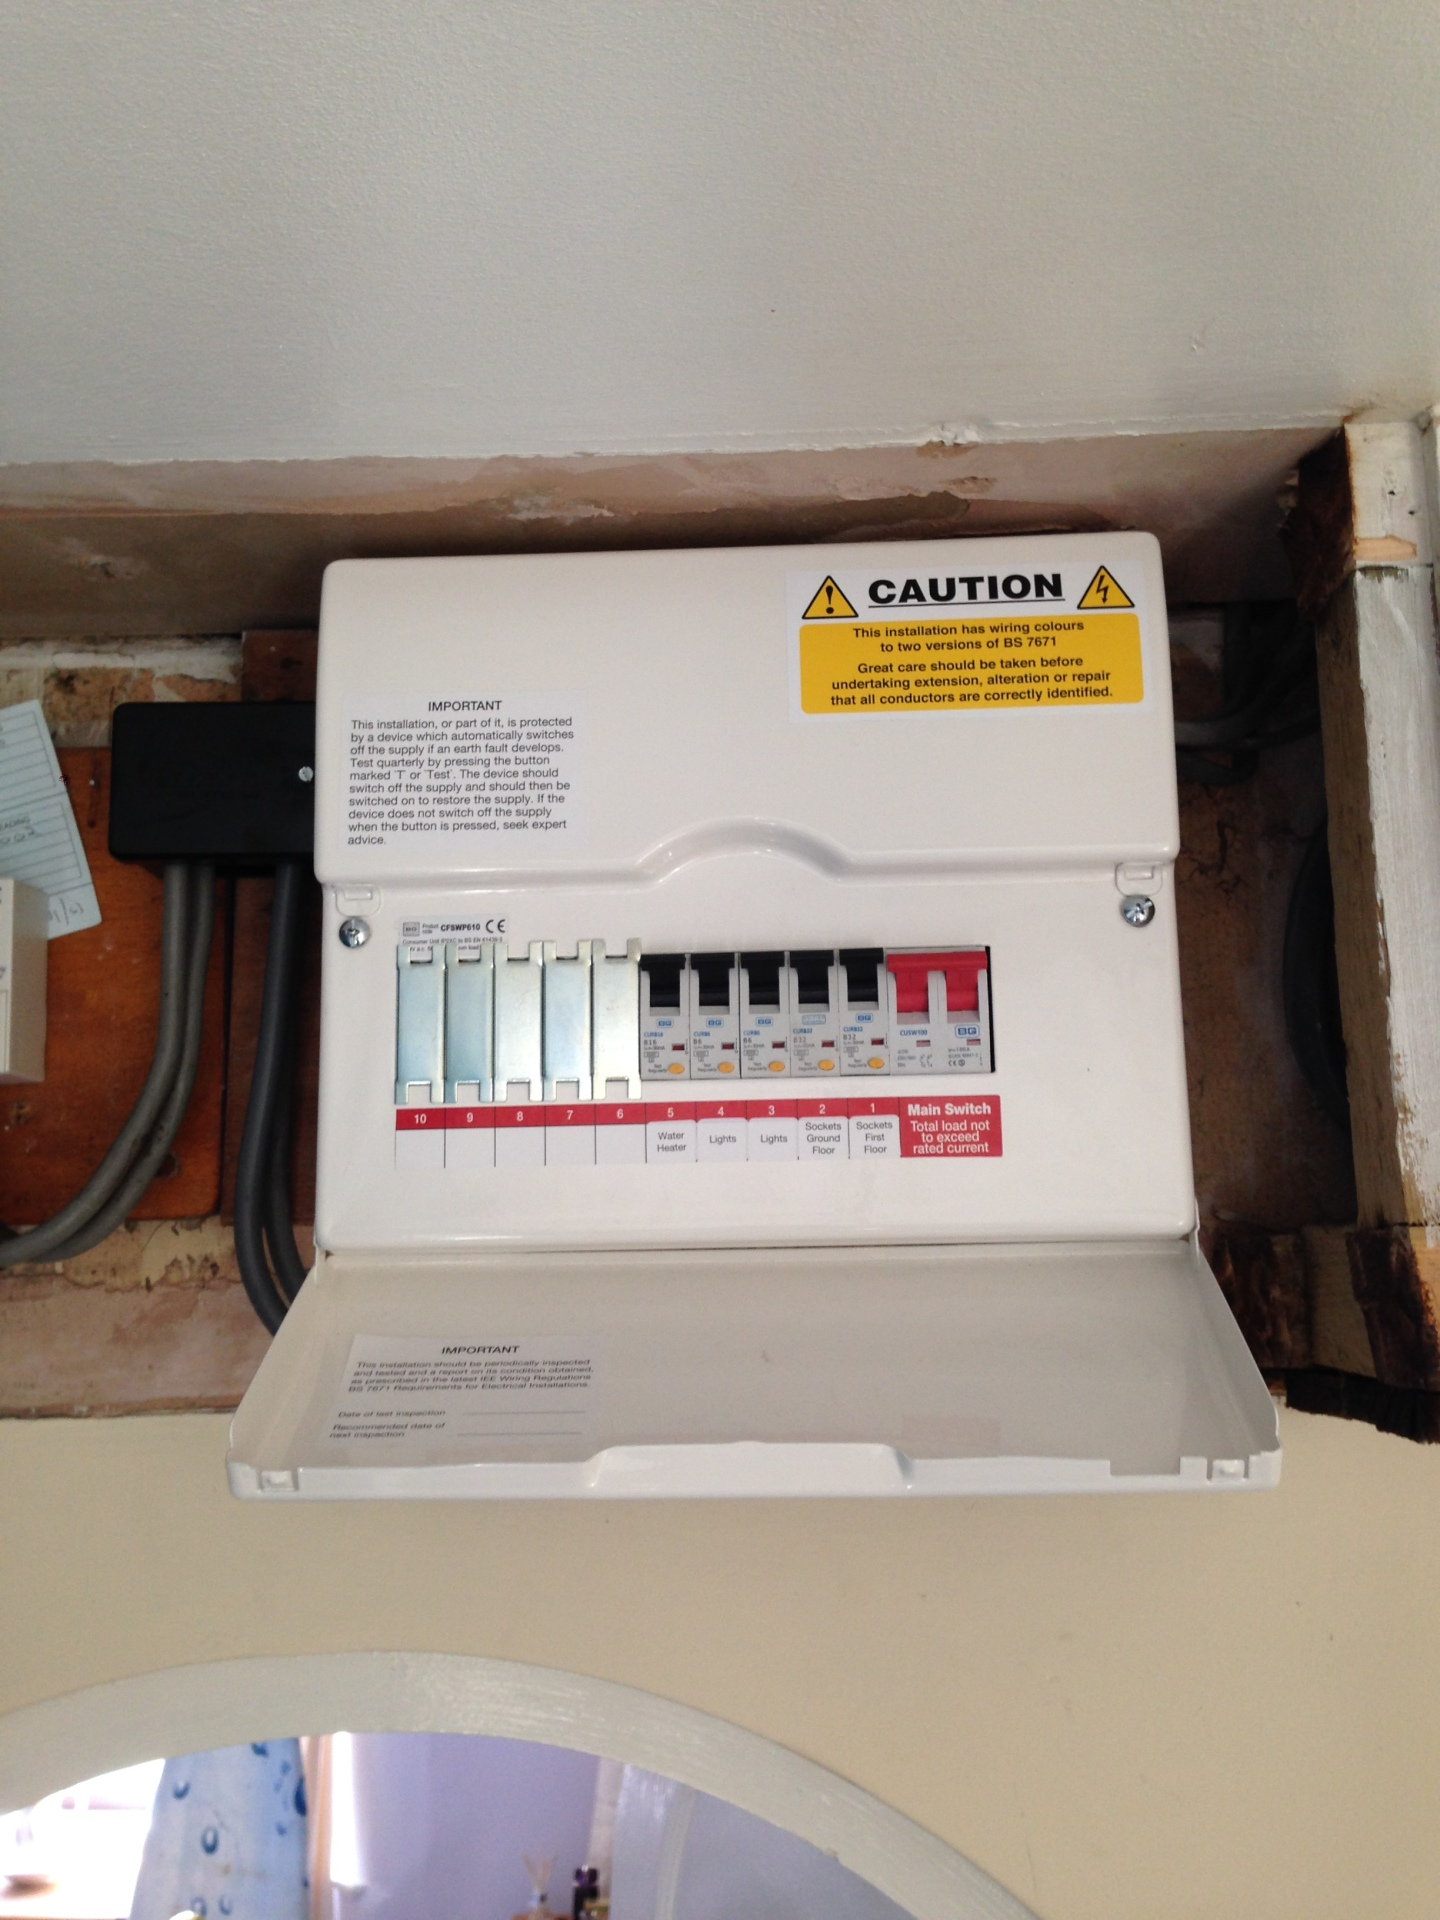 New consumer unit fitted to 17th edition regulations by an electrician at Scarlett Electrical